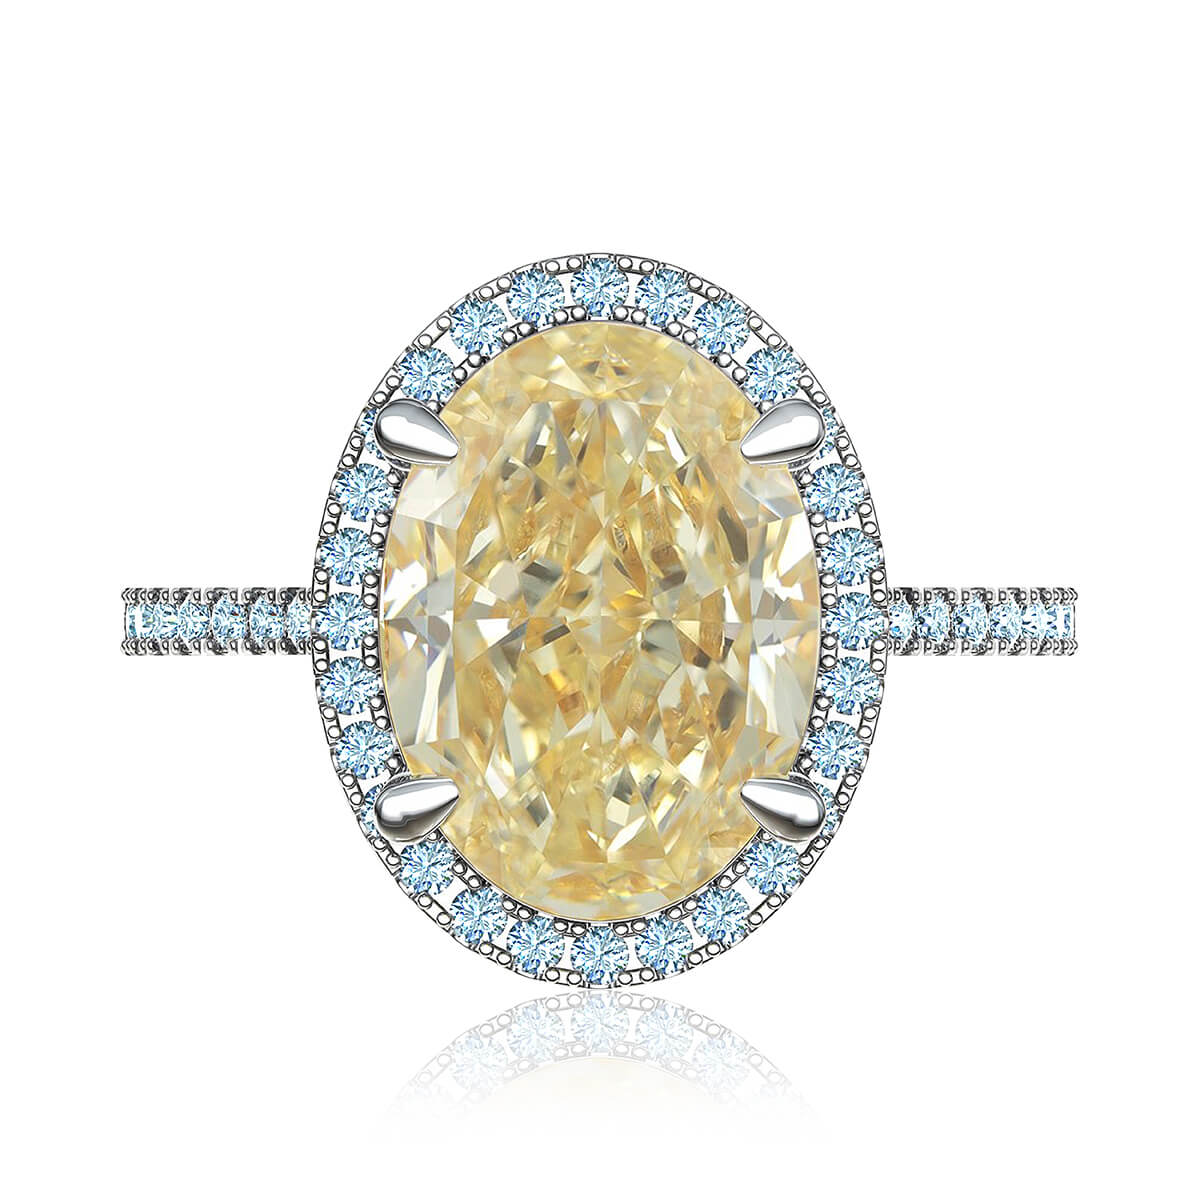 Queen Constance Diamond Ring